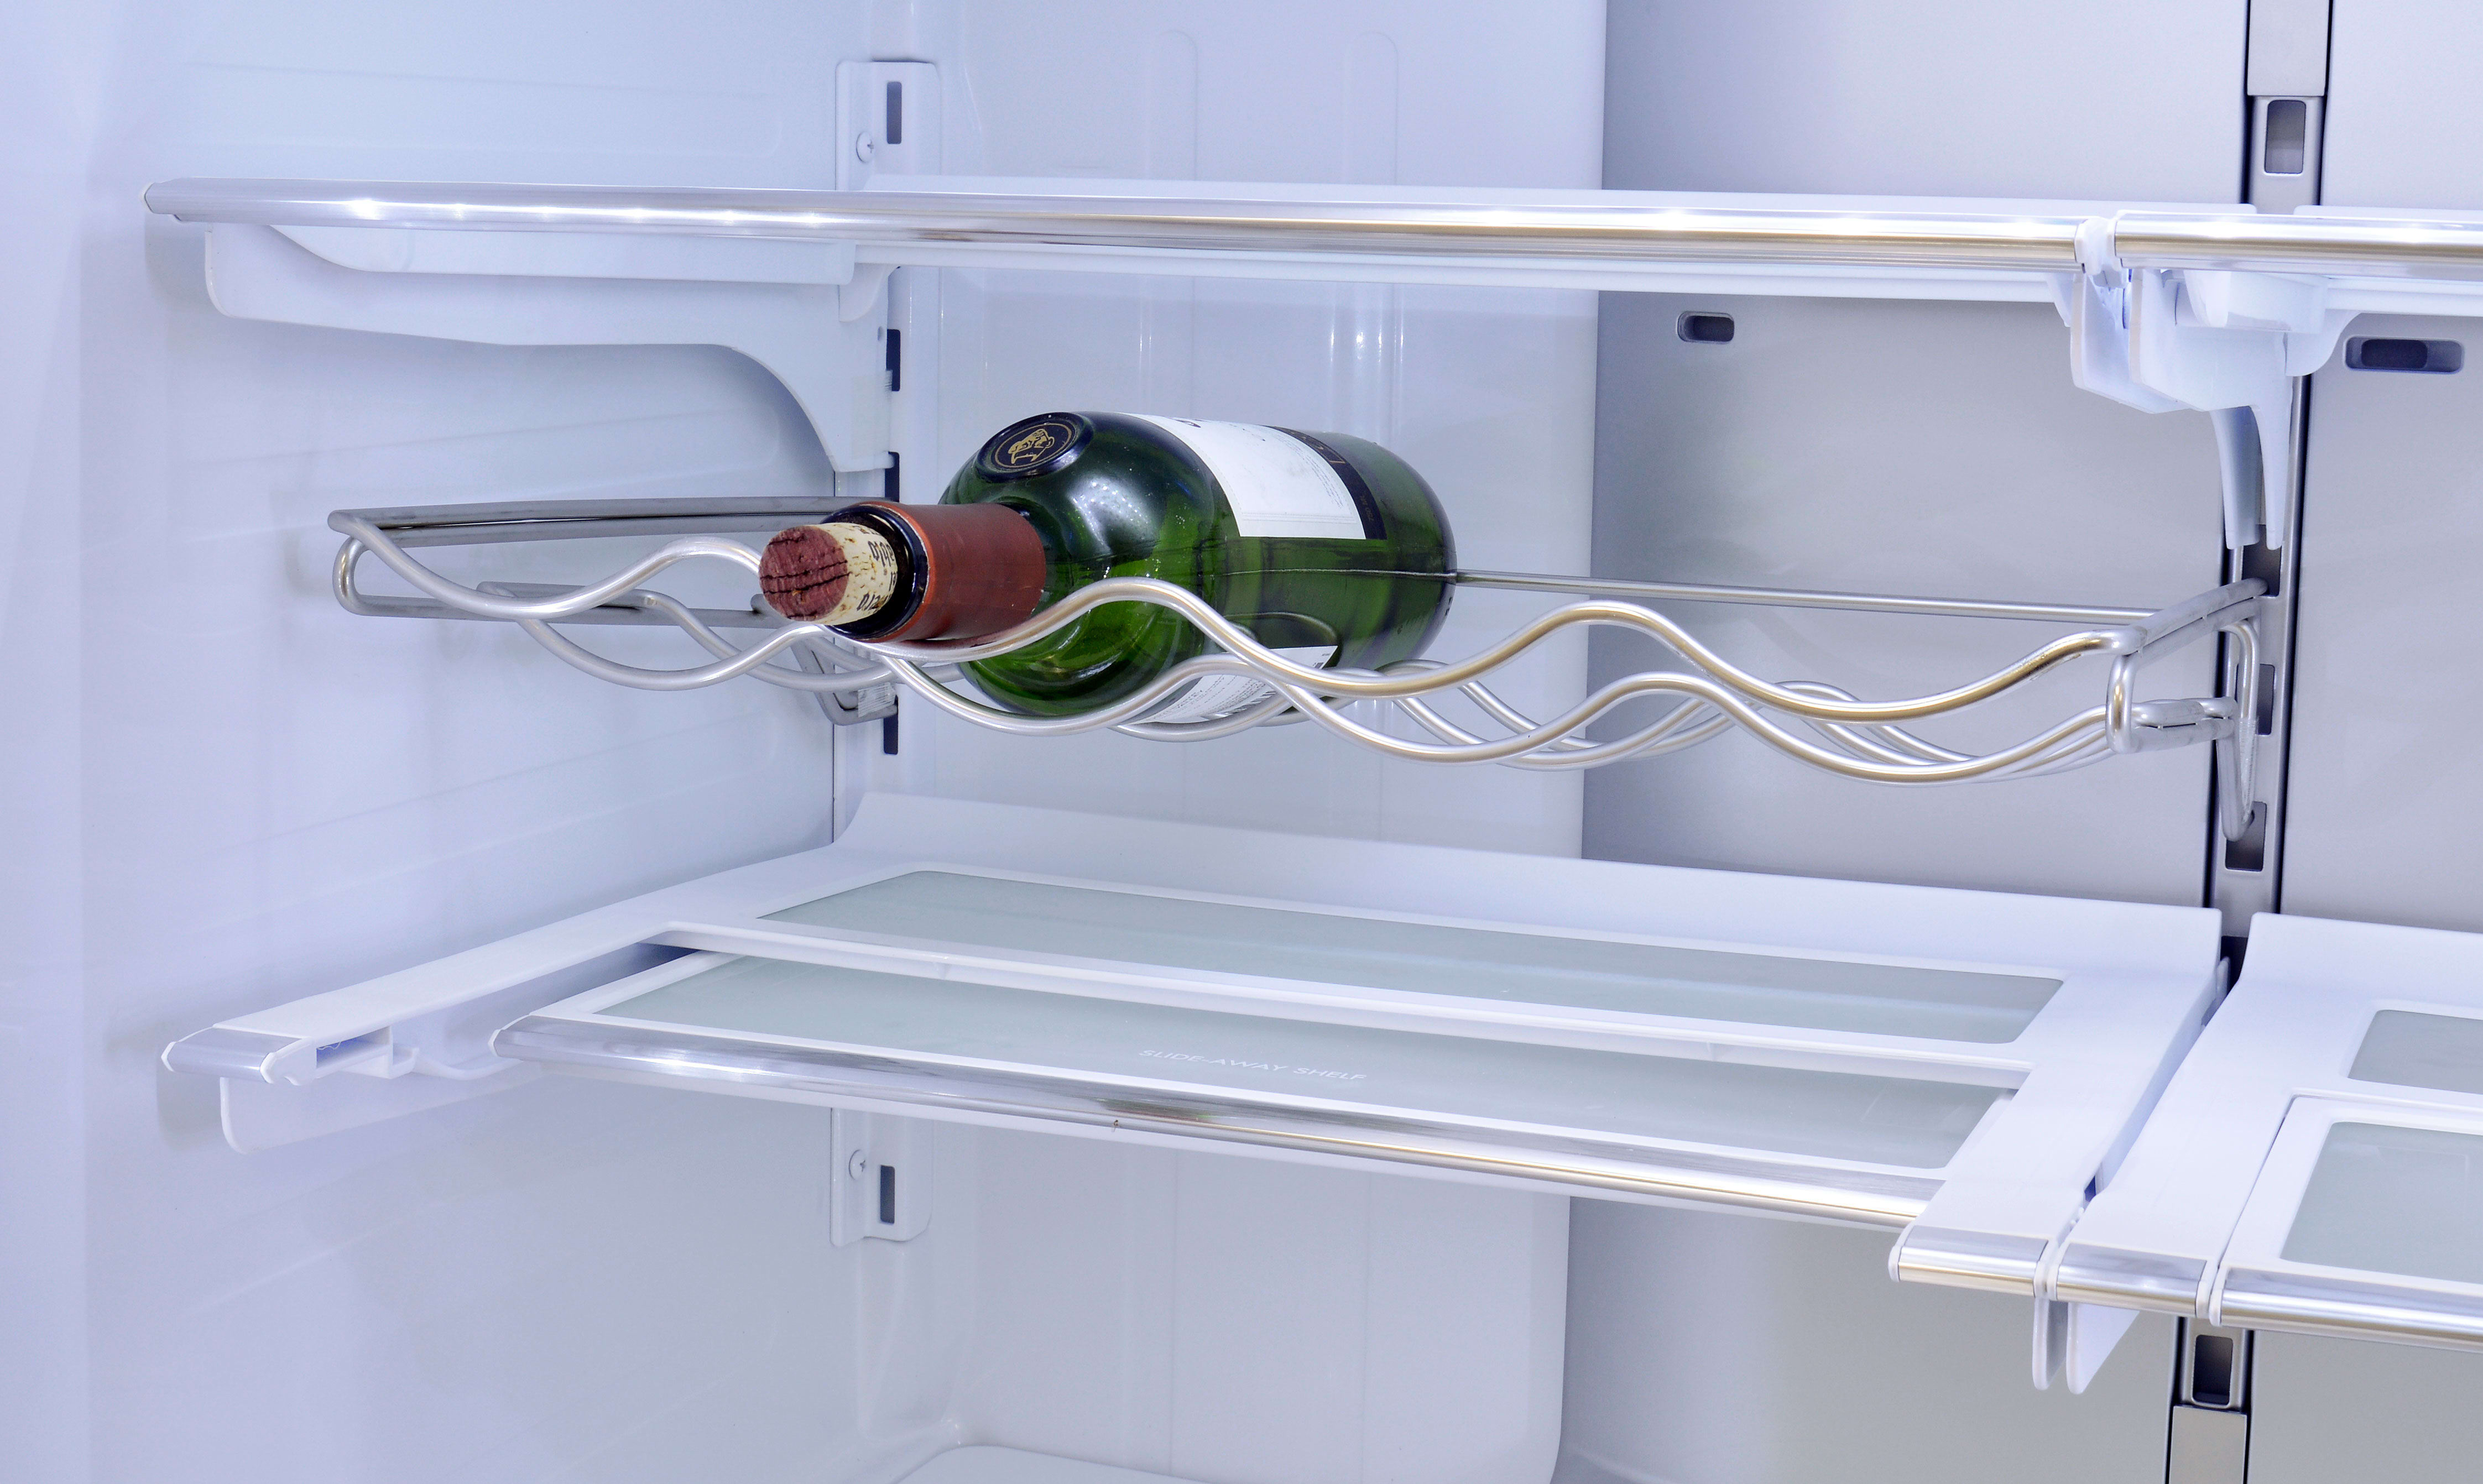 The Kenmore Pro 79993's removable wine rack has enough space for four bottles.